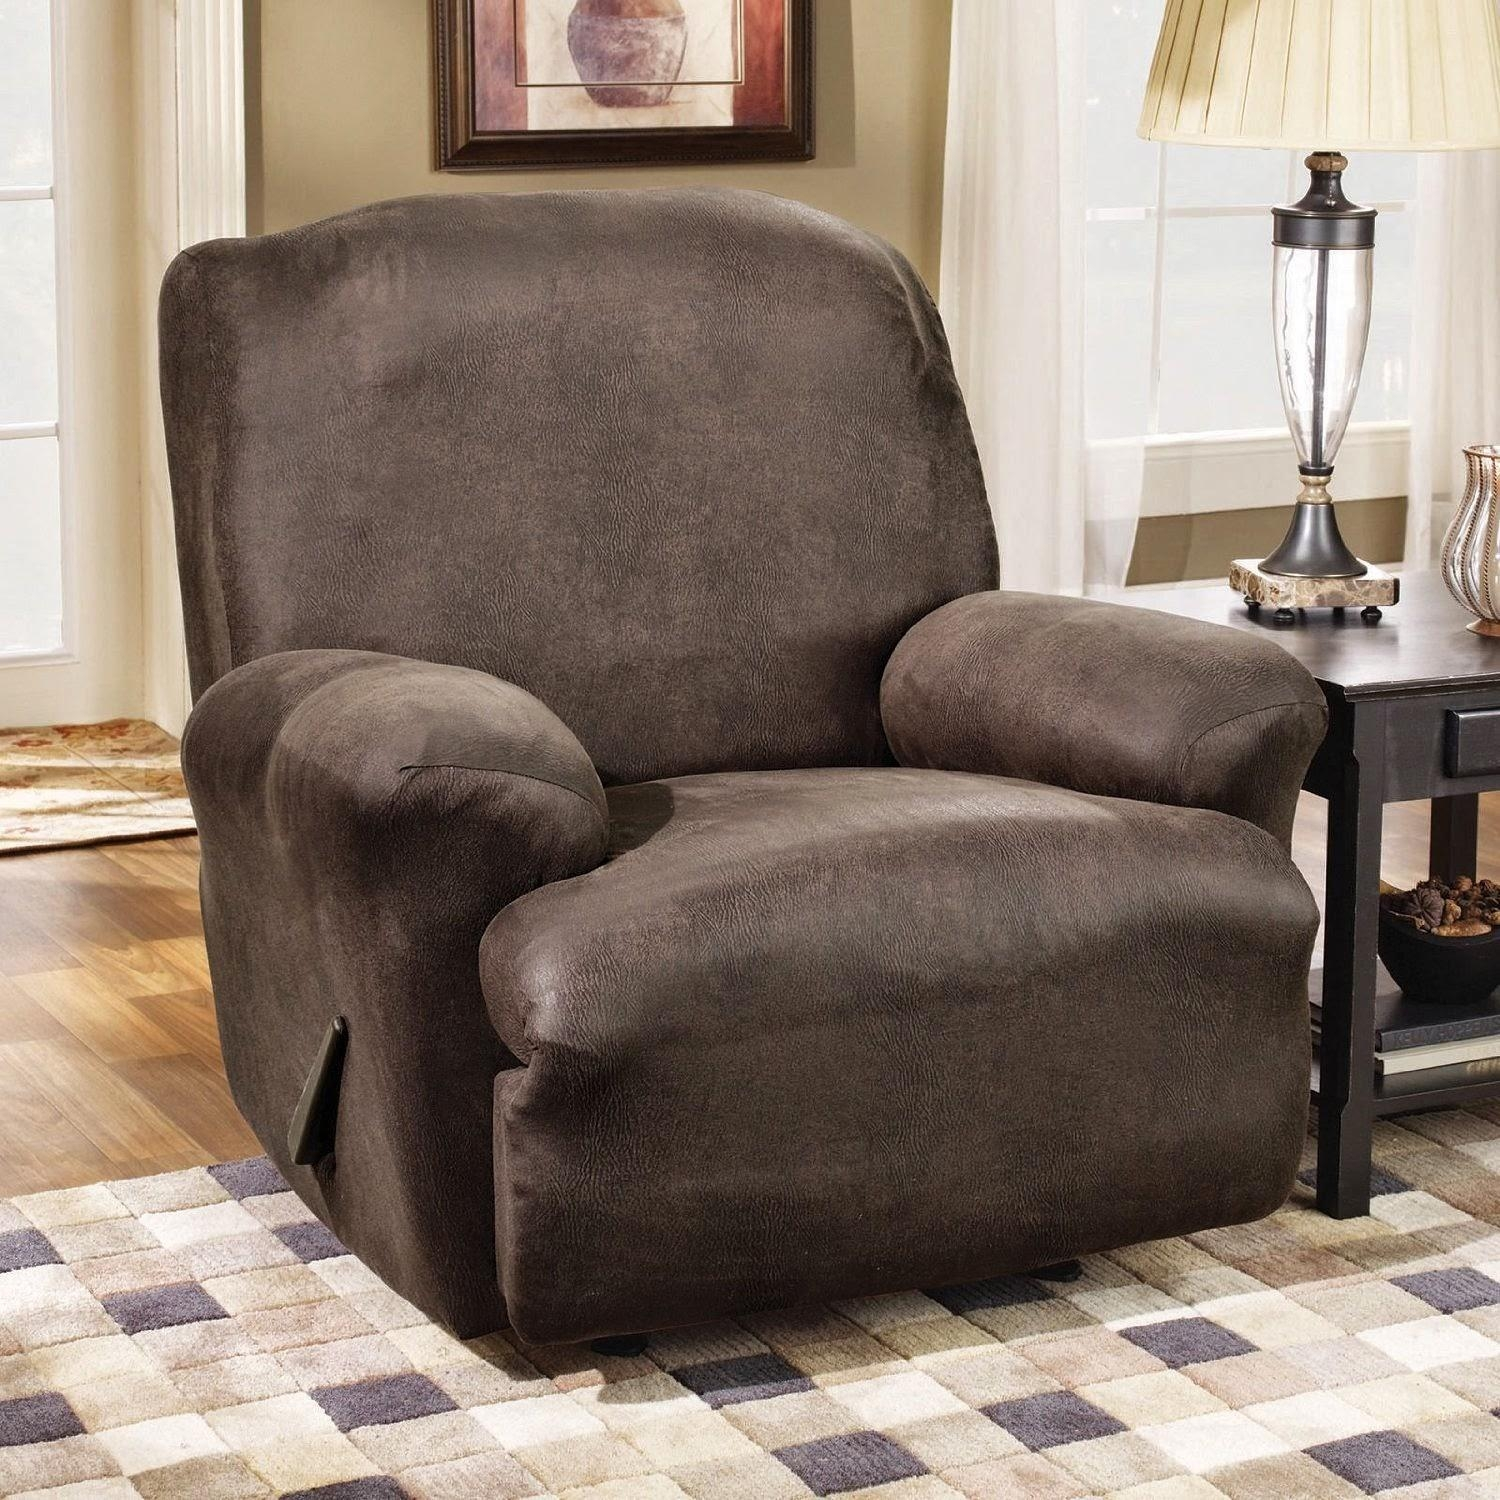 Couch Slipcovers For Reclining Sofa – Laura Williams With Regard To Slipcover For Recliner Sofas (View 2 of 20)